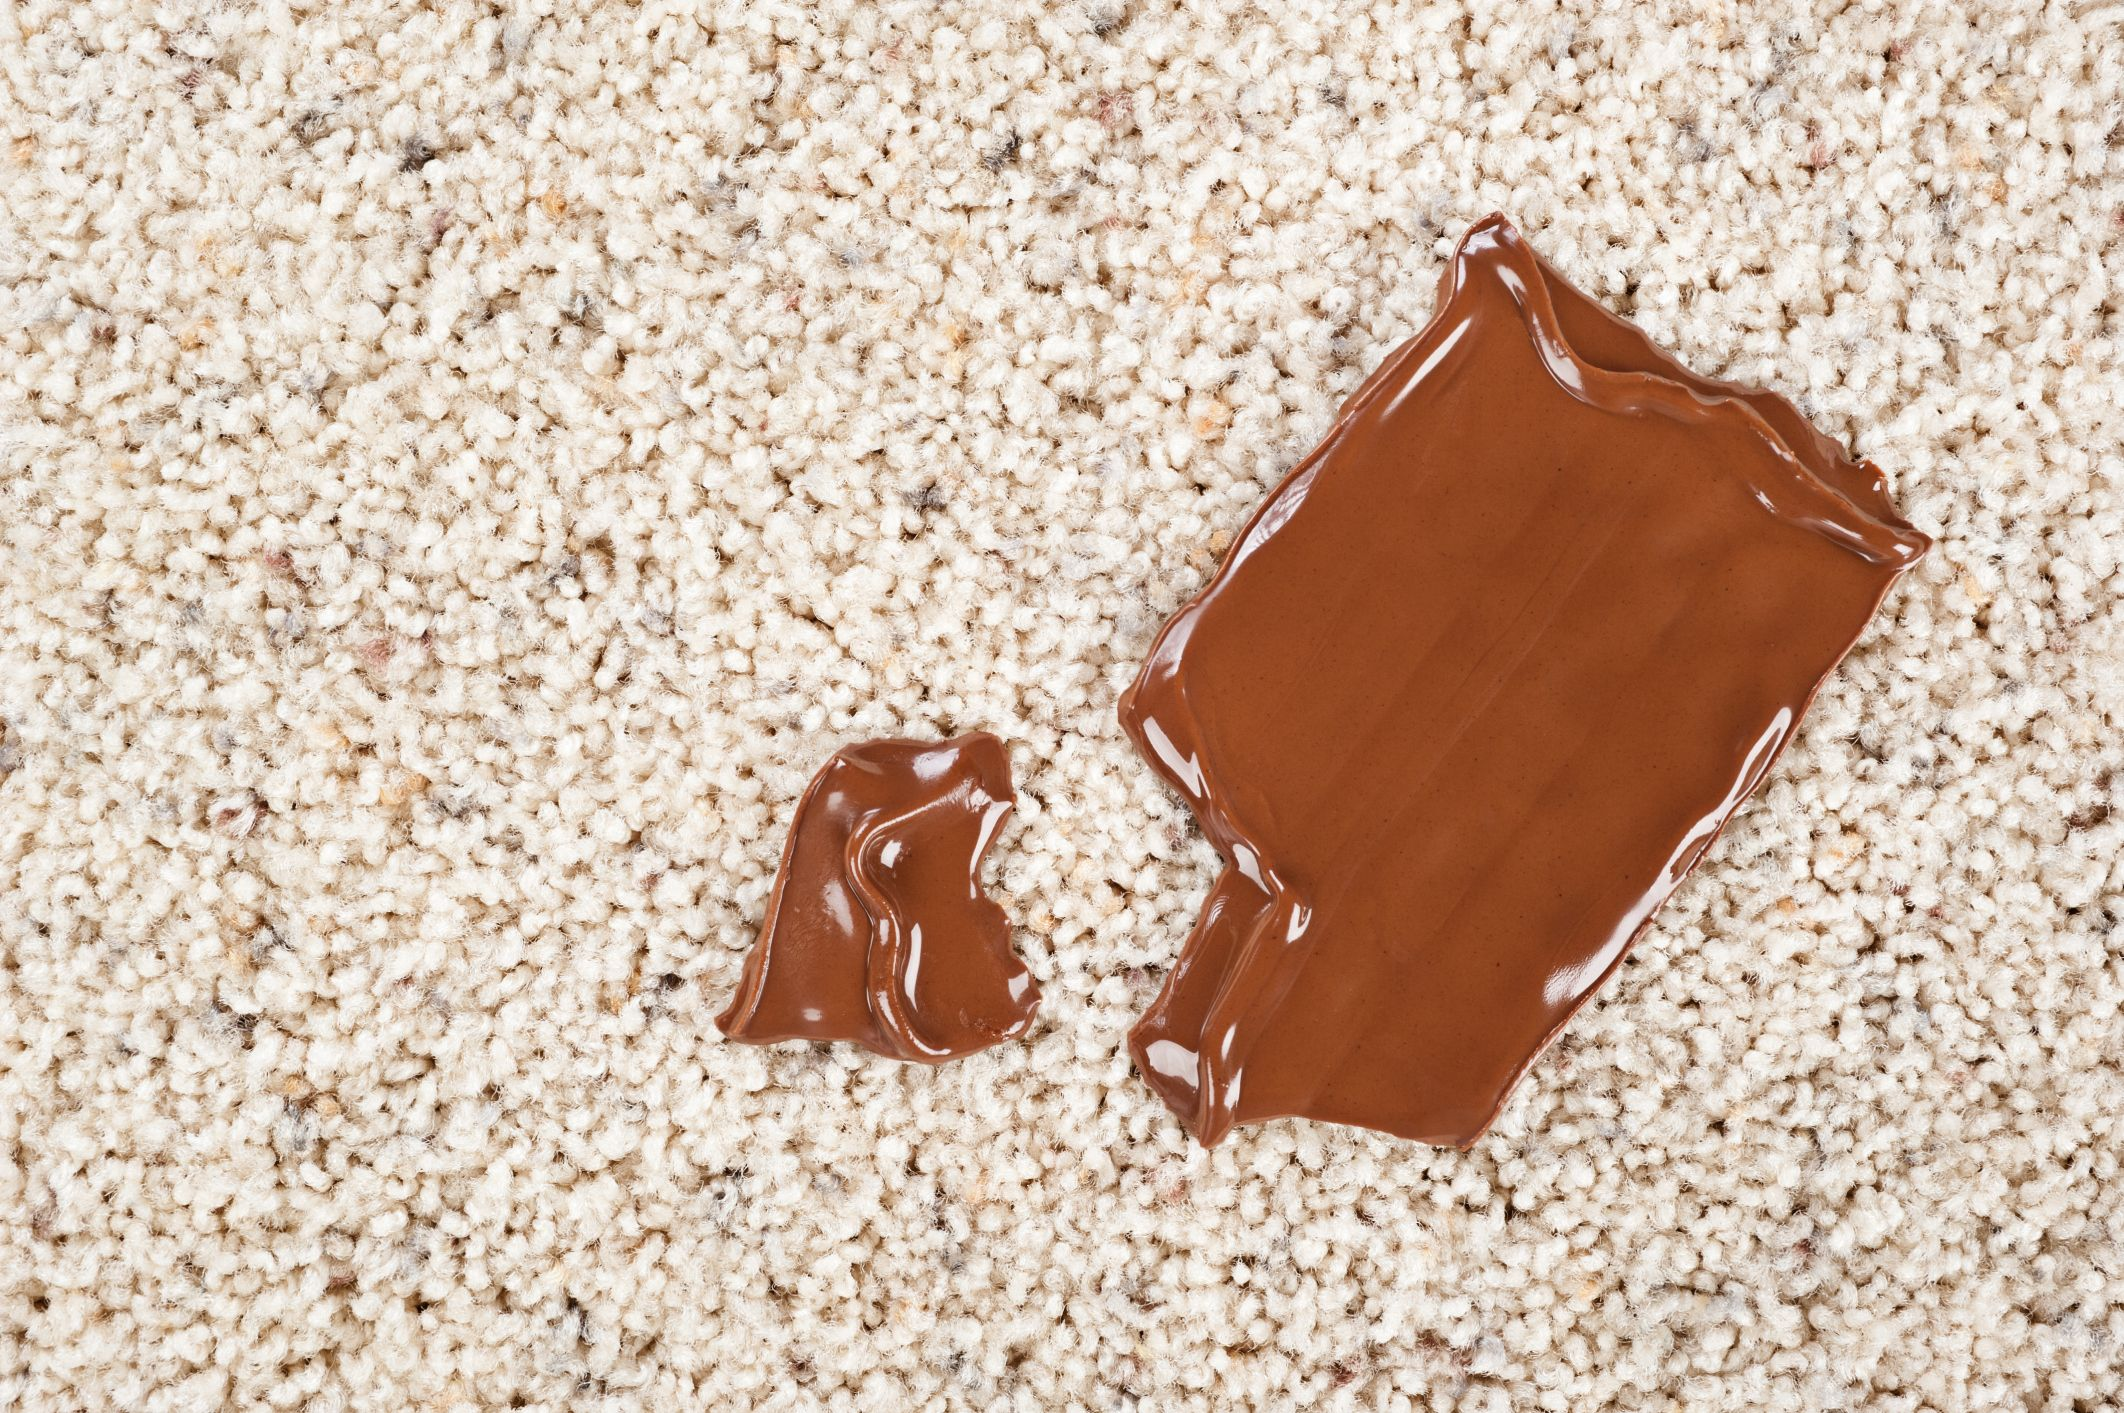 How to get chocolate stains out of carpet removing